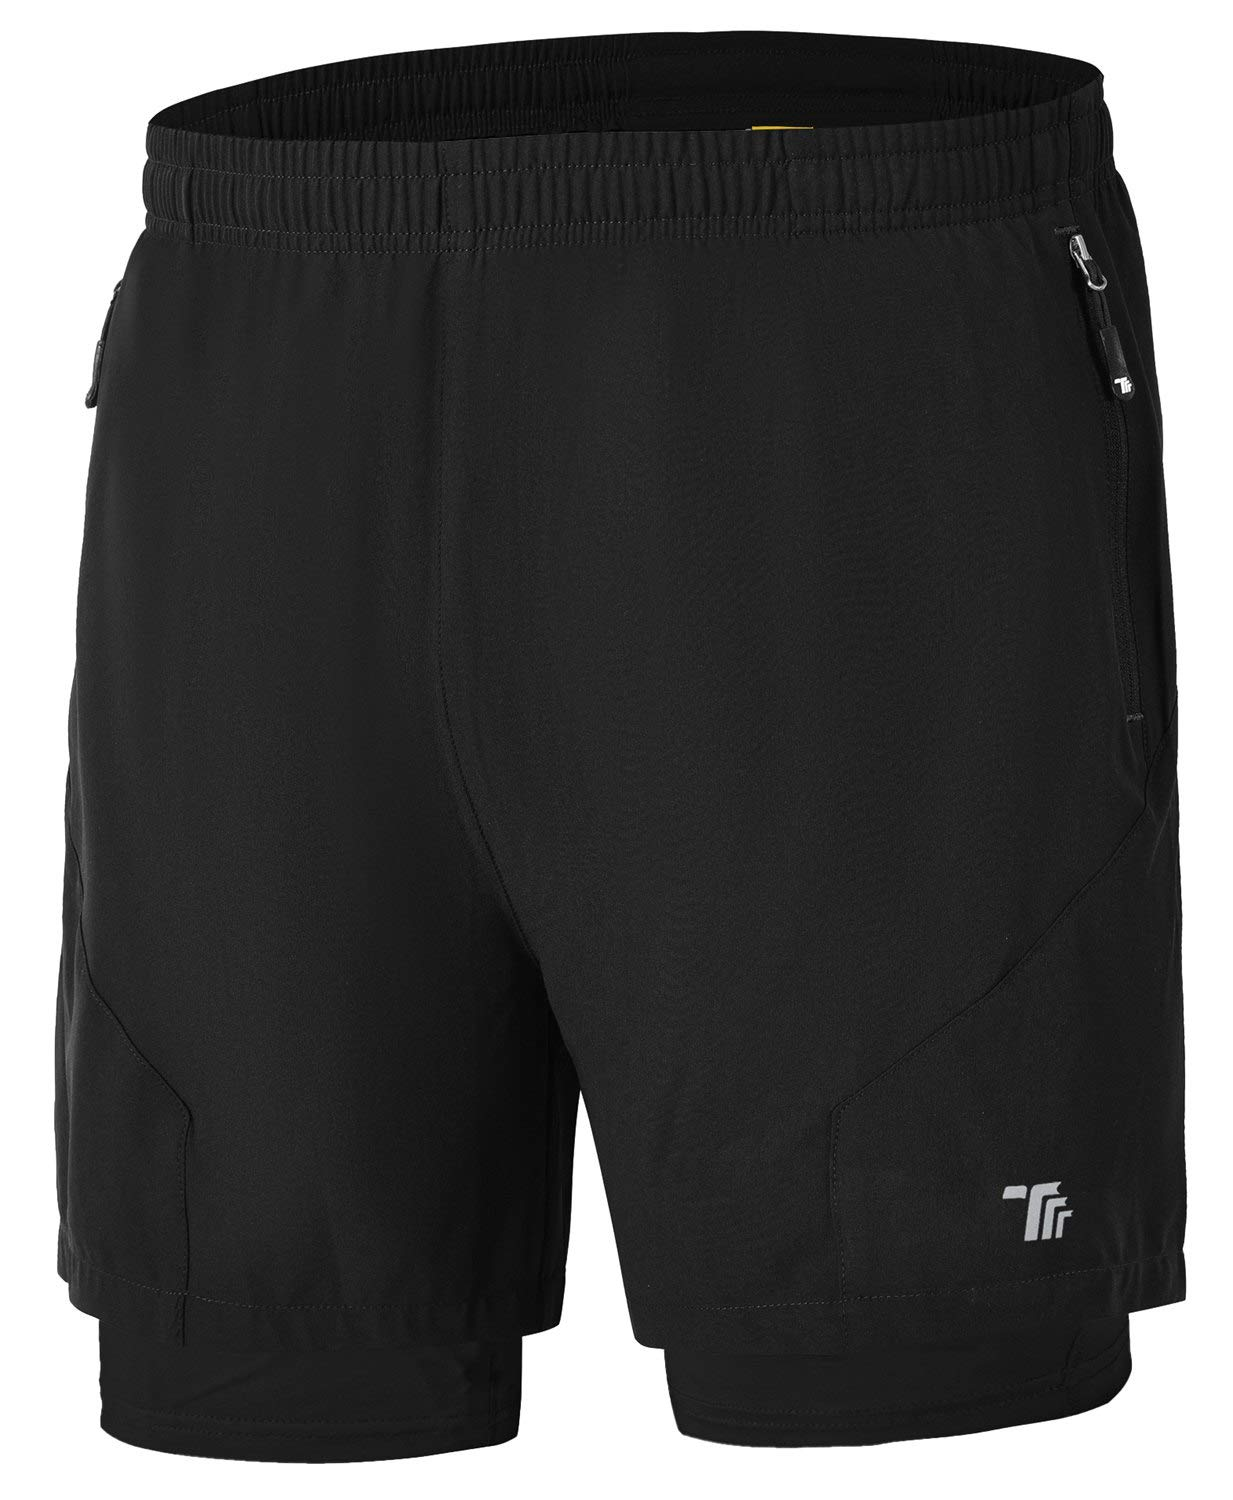 Rdruko Men's 2 in 1 Workout Running Shorts Quick Dry Lightweight Gym Shorts with Mesh Liner